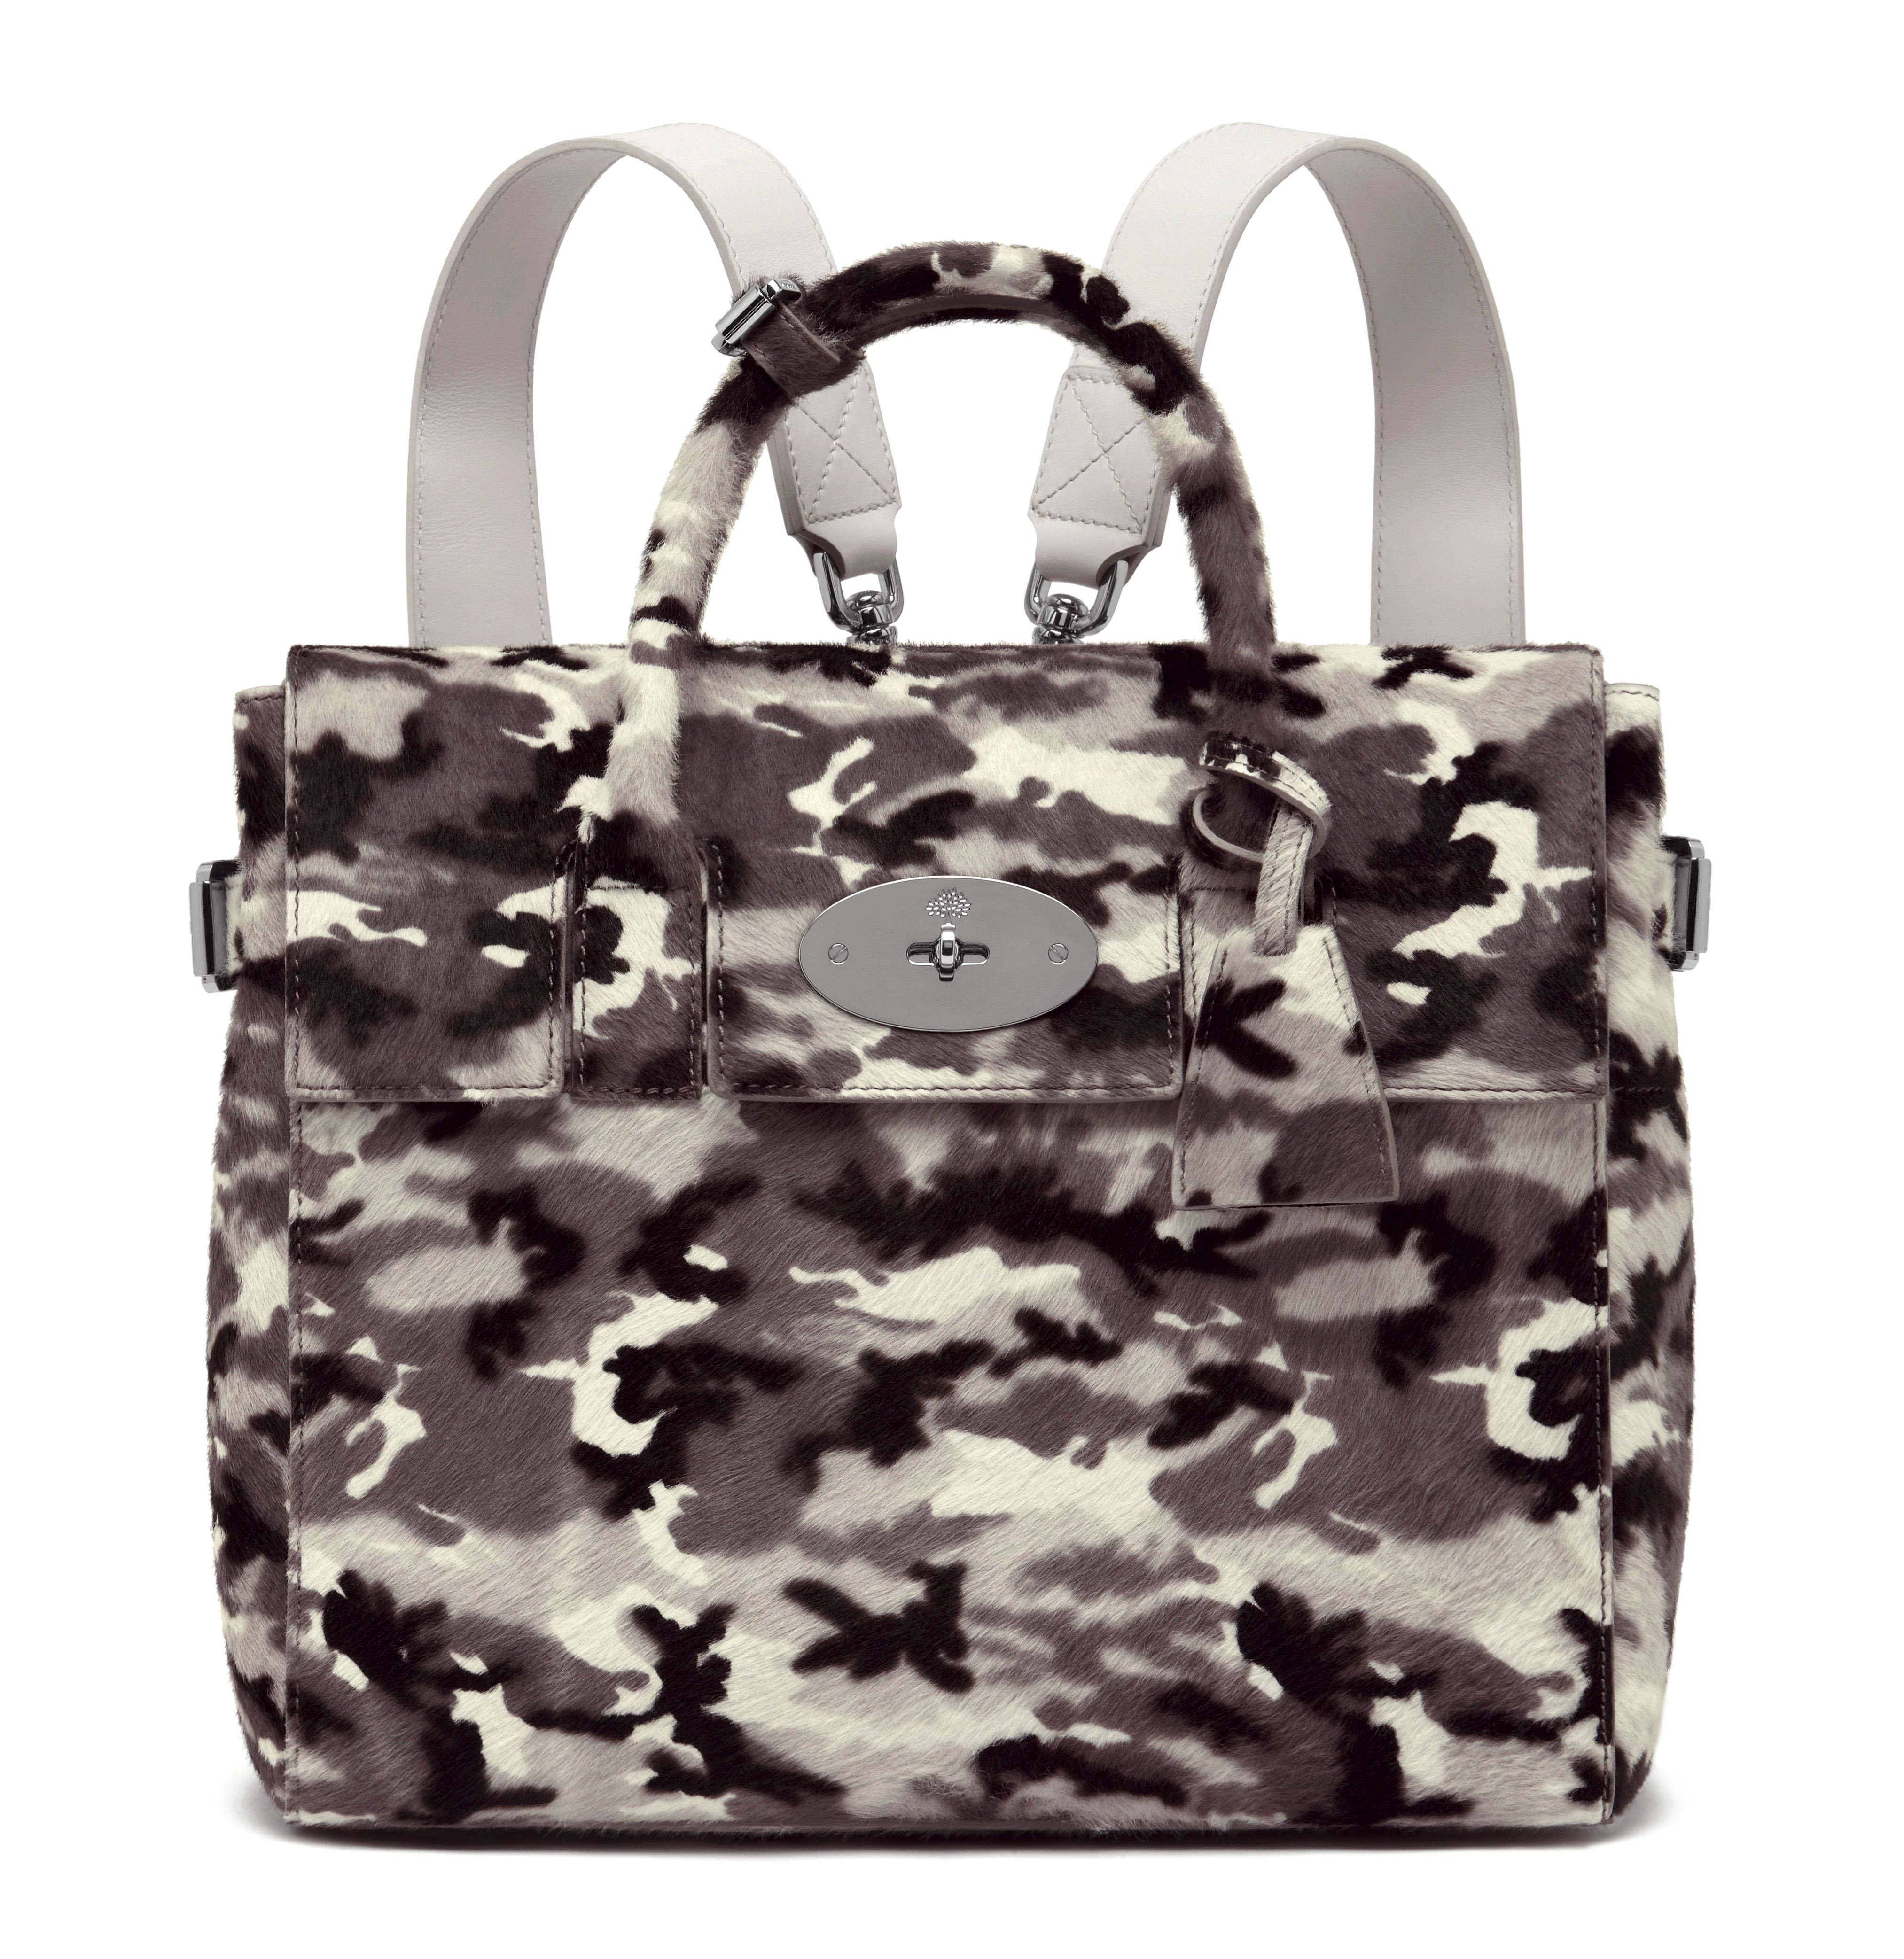 Cara Delevingne Bag in Black-White Camo Haircalf